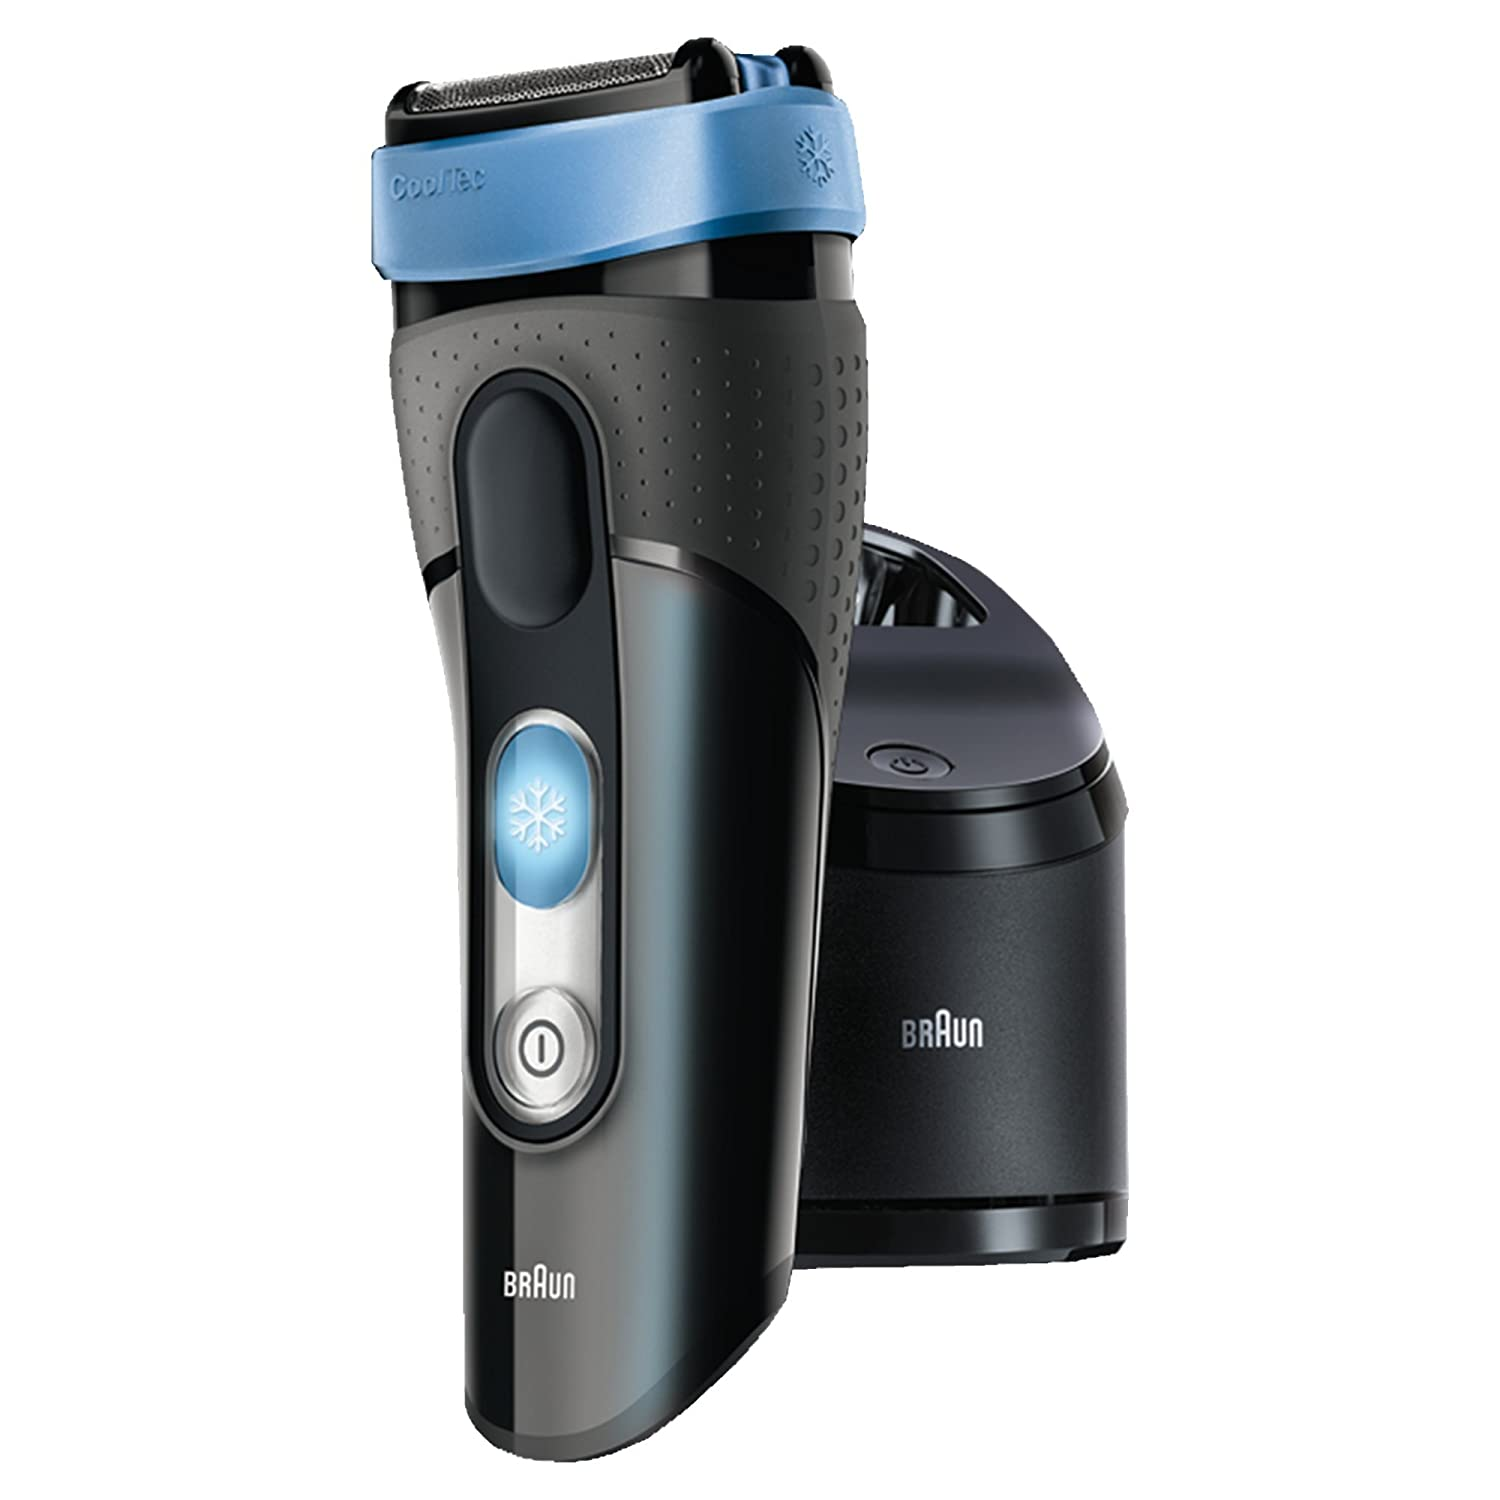 Braun CoolTec CT2cc Wet and Dry Electric Foil Shaver with Clean and Charge Station 8405334